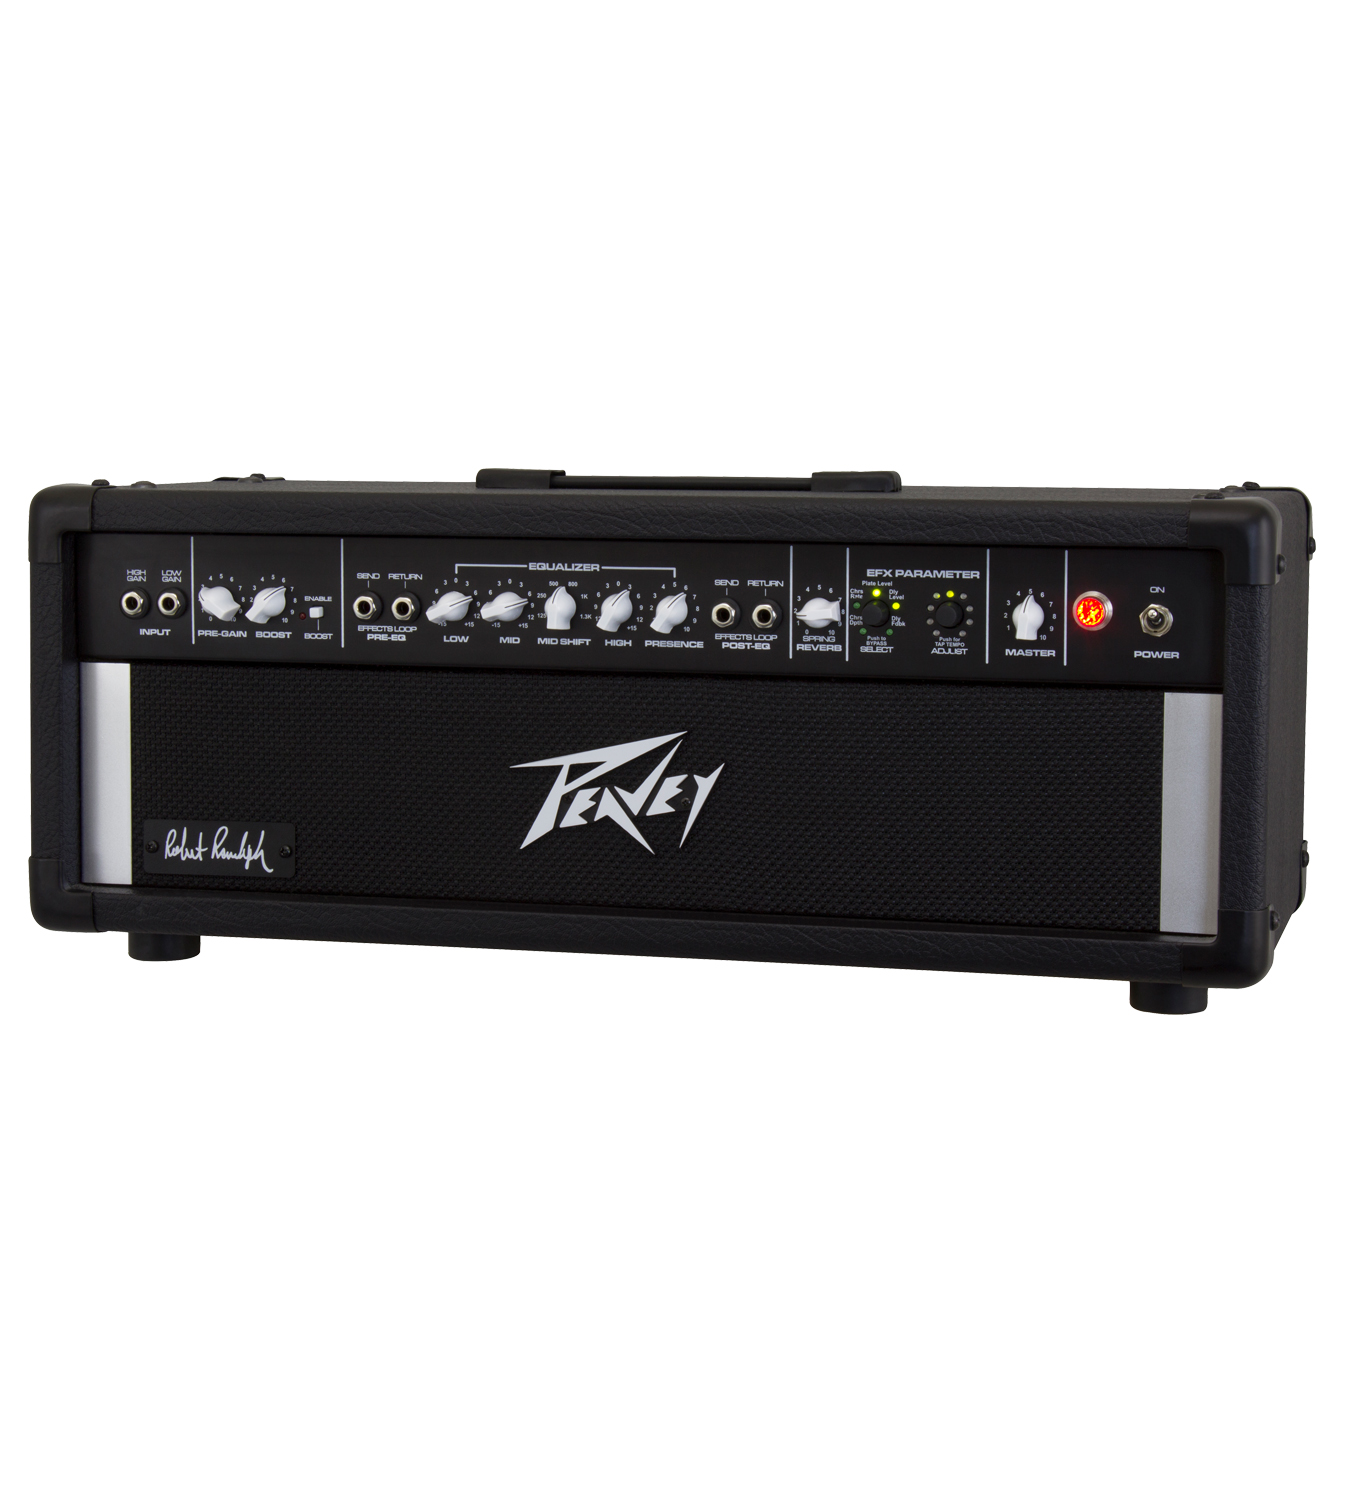 peavey robert randolph signature pedal lap steel guitar amplifier head 500w amp pev17 3615060 rs. Black Bedroom Furniture Sets. Home Design Ideas